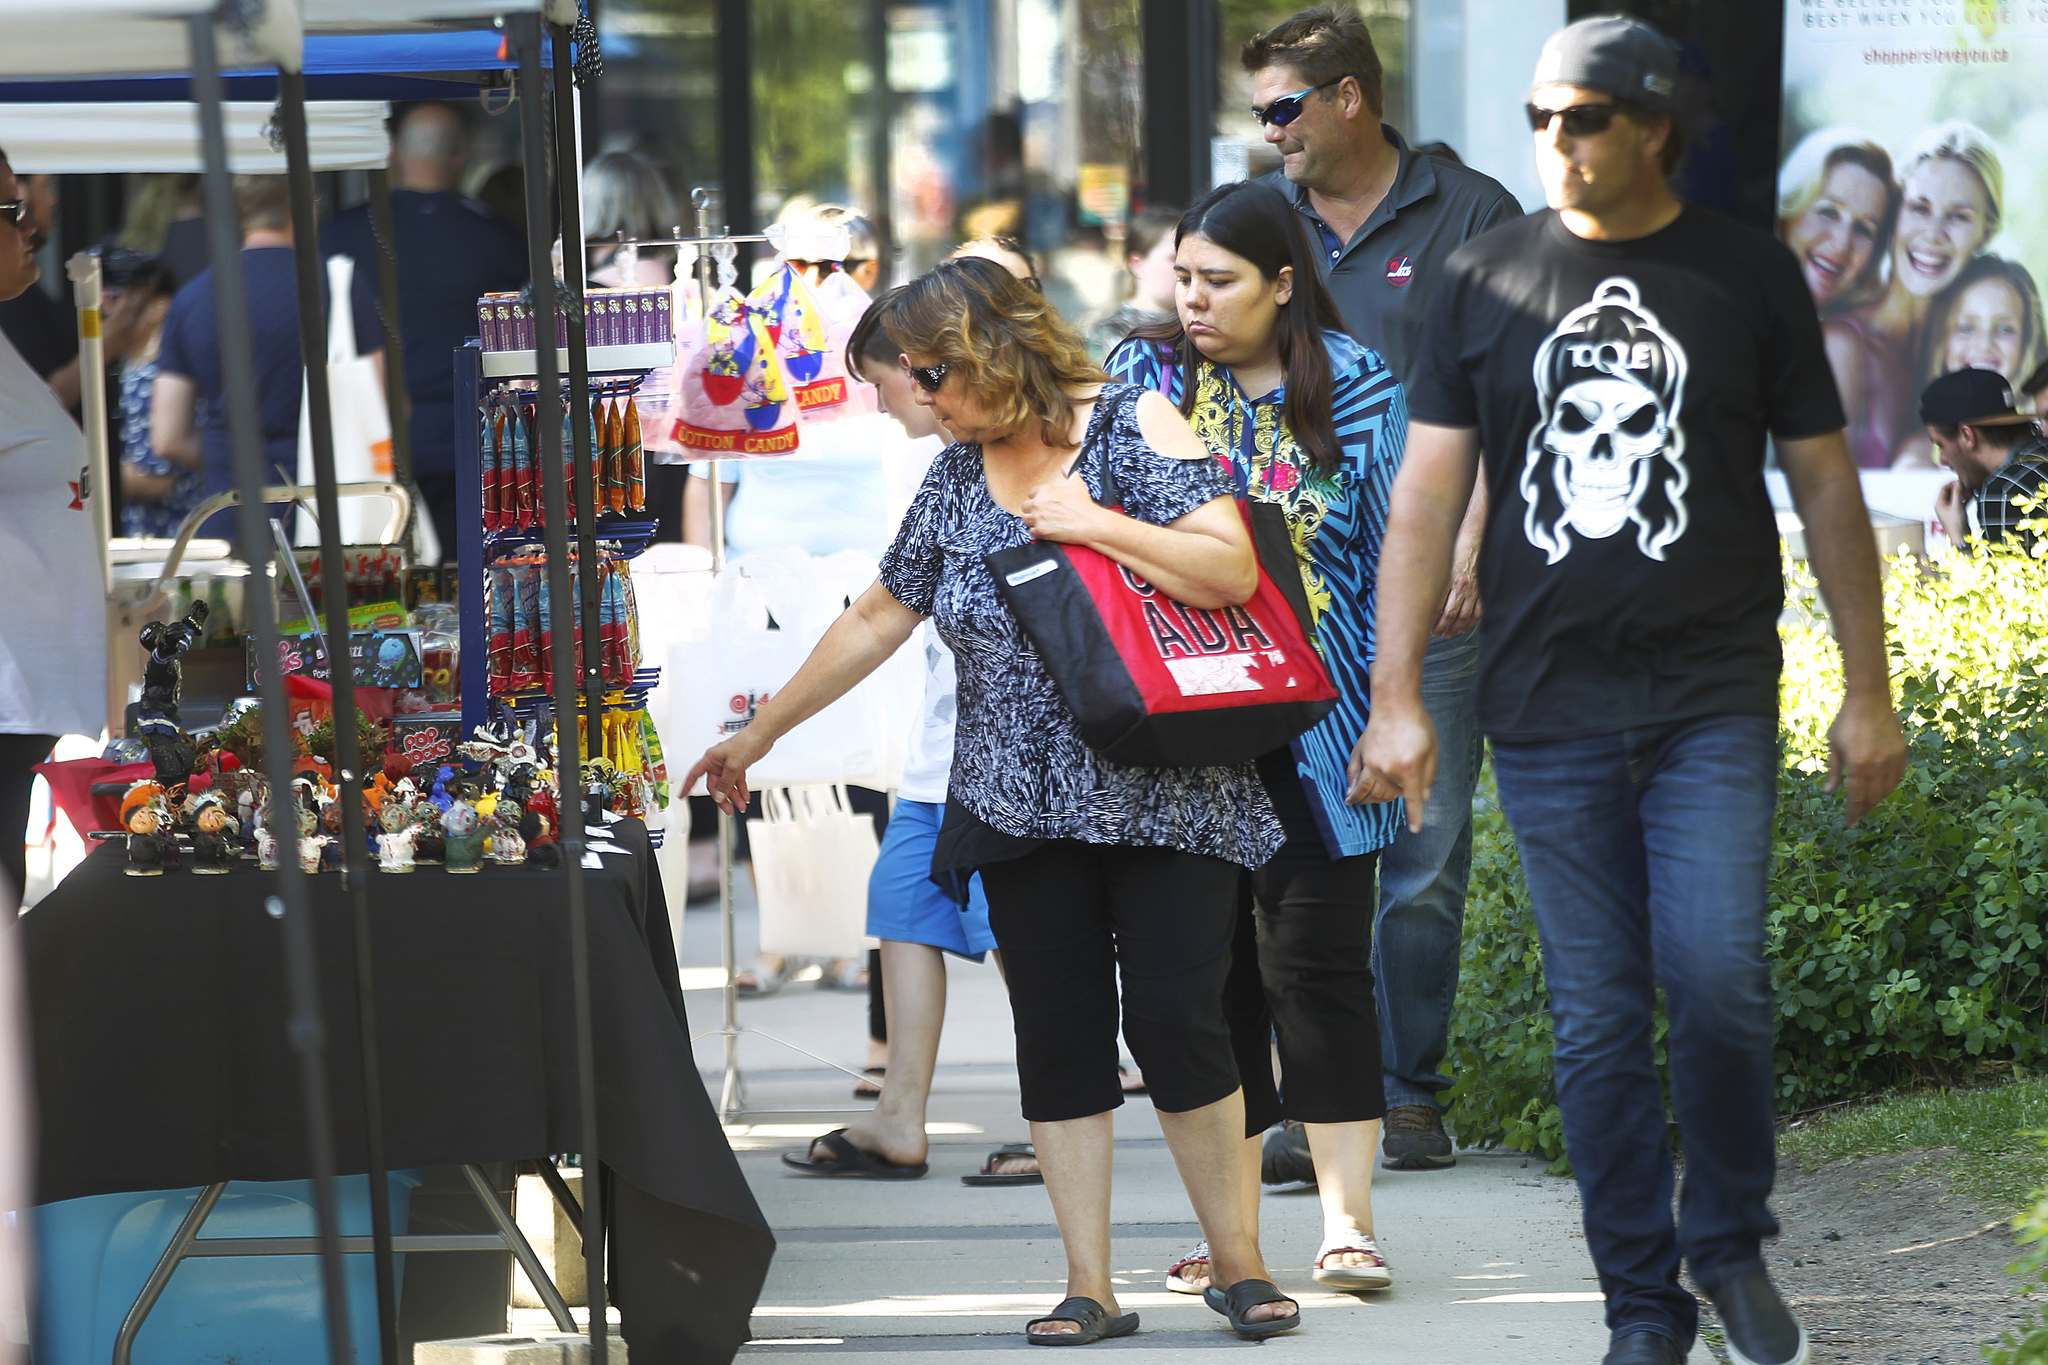 PHIL HOSSACK / WINNIPEG FREE PRESS FILES</p><p>Manitoba Hydro Plaza will be teeming with visitors and vendors Aug. 30., from 5 to 11 p.m. for the Downtown Winnipeg Night Market.</p>